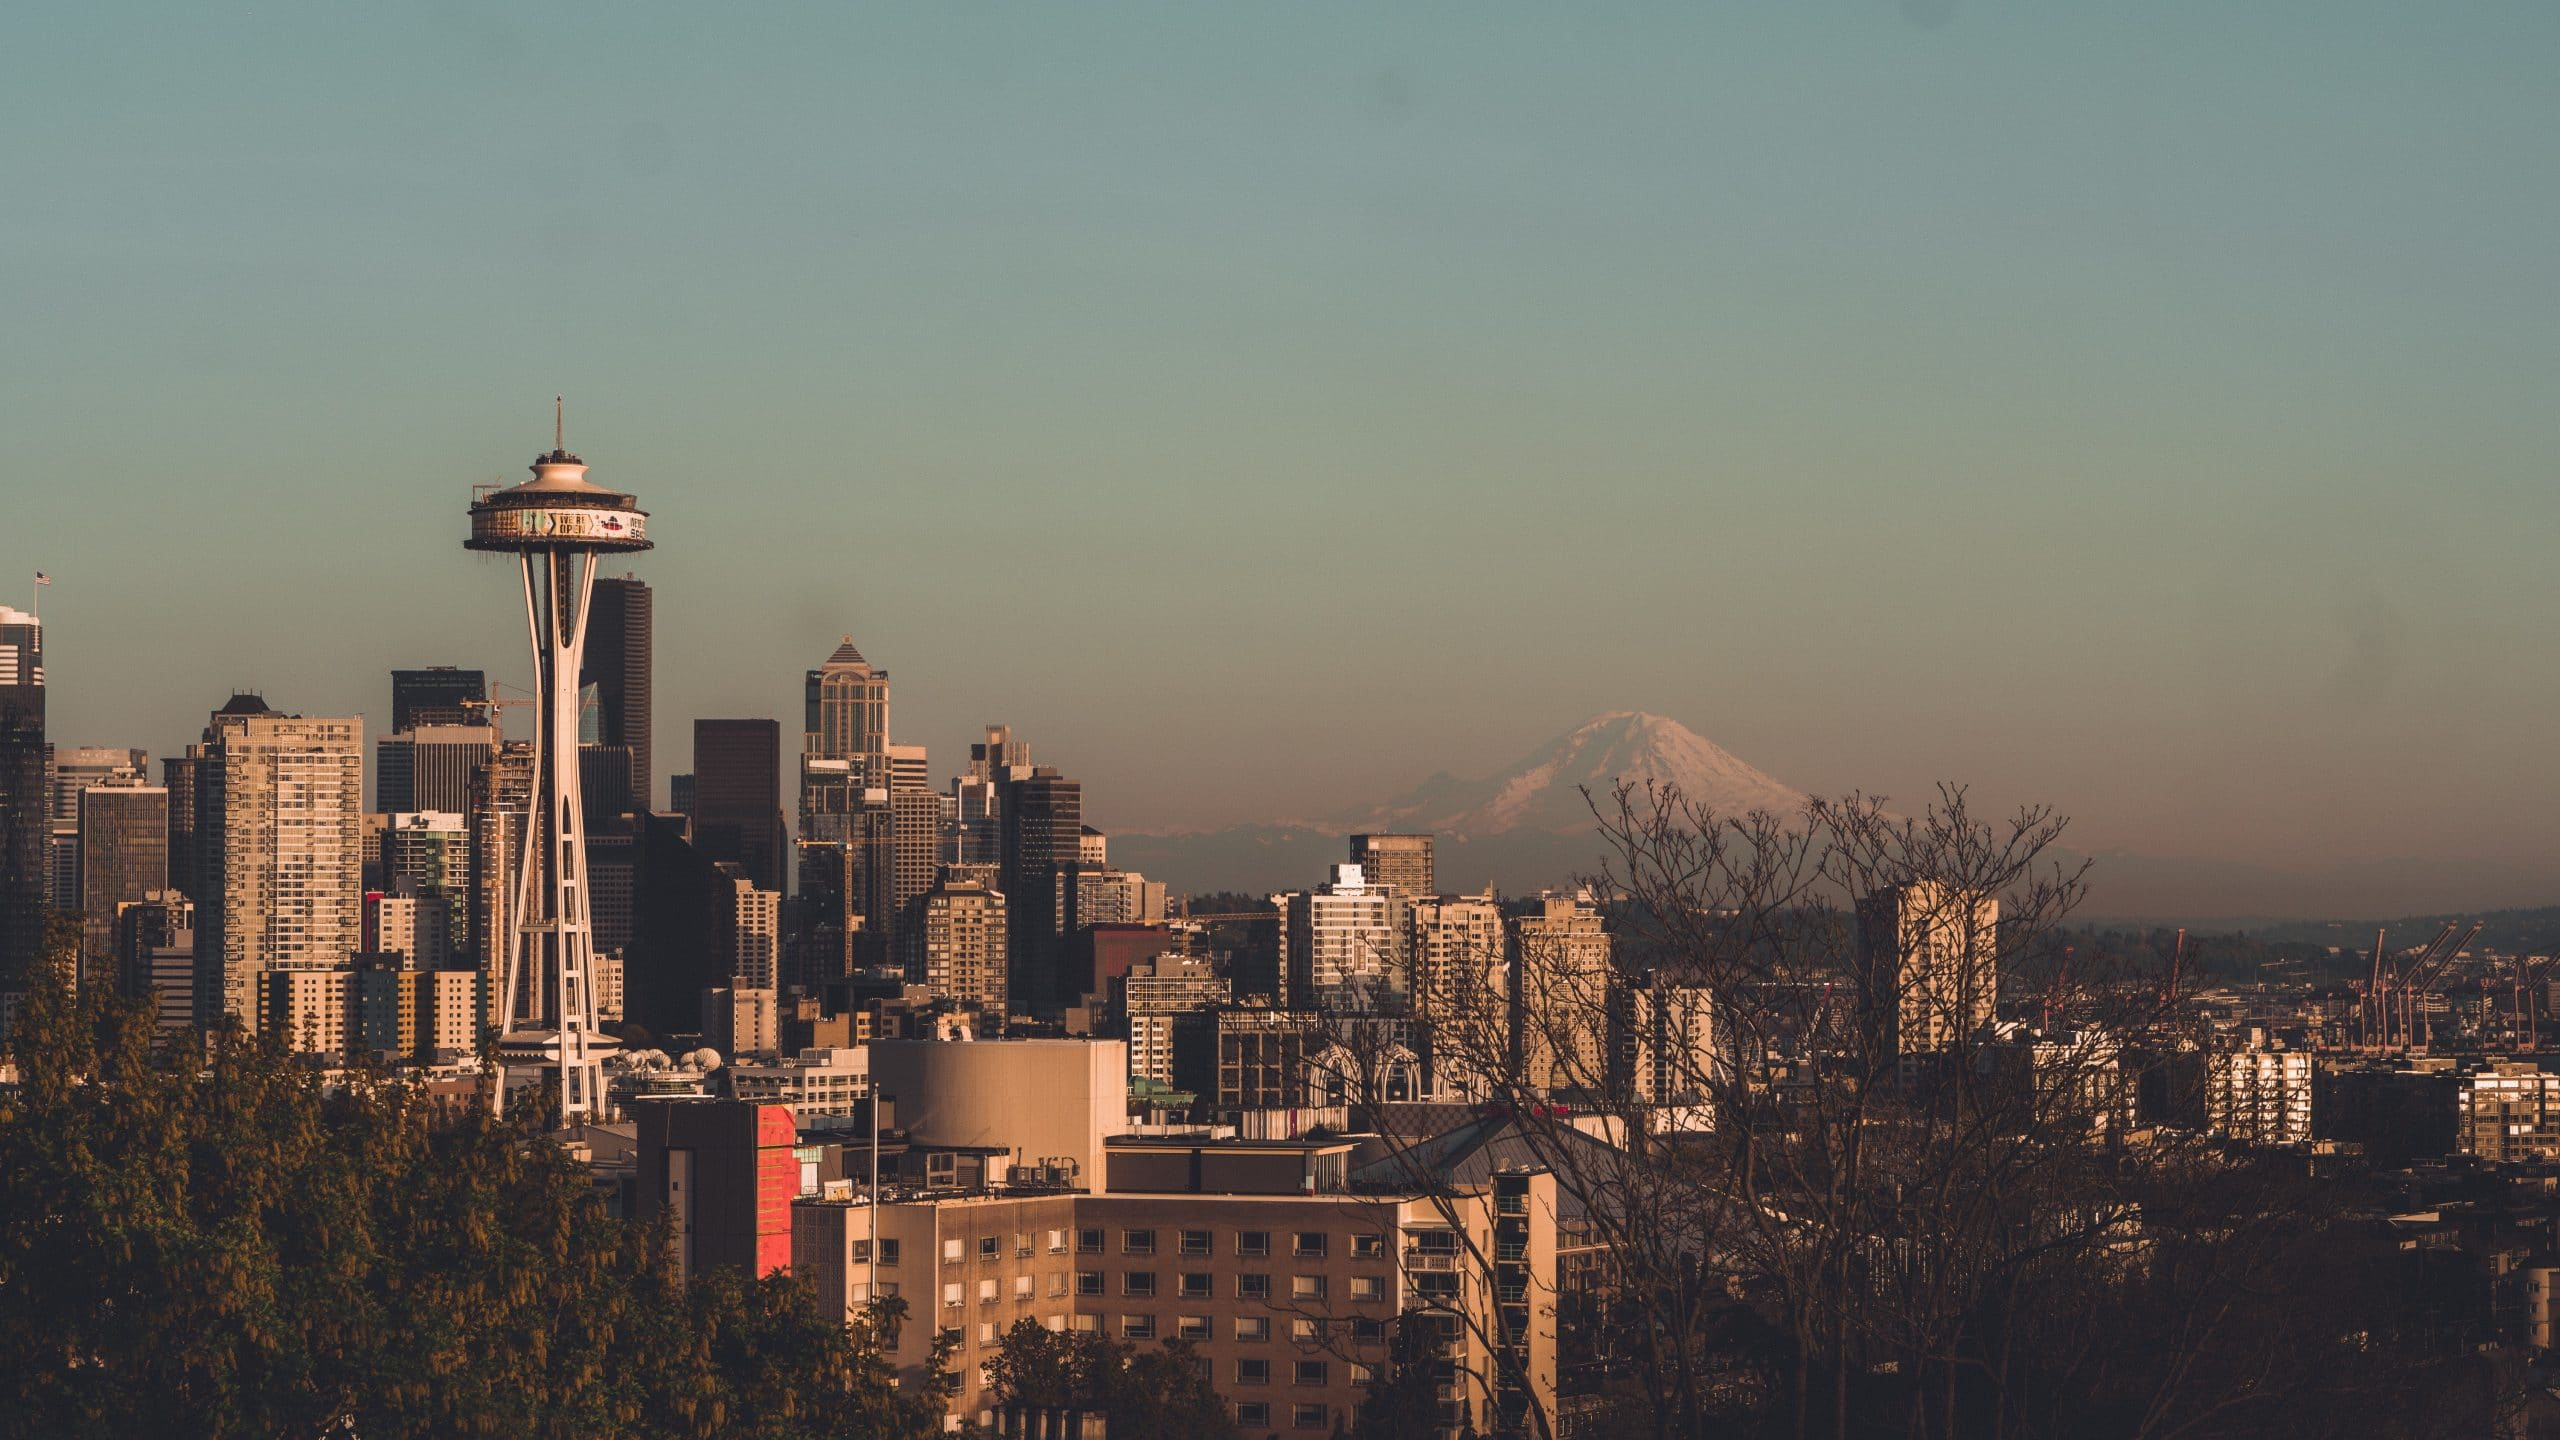 Seattle with snow capped rockies in the background as U.S. opens land border November 8